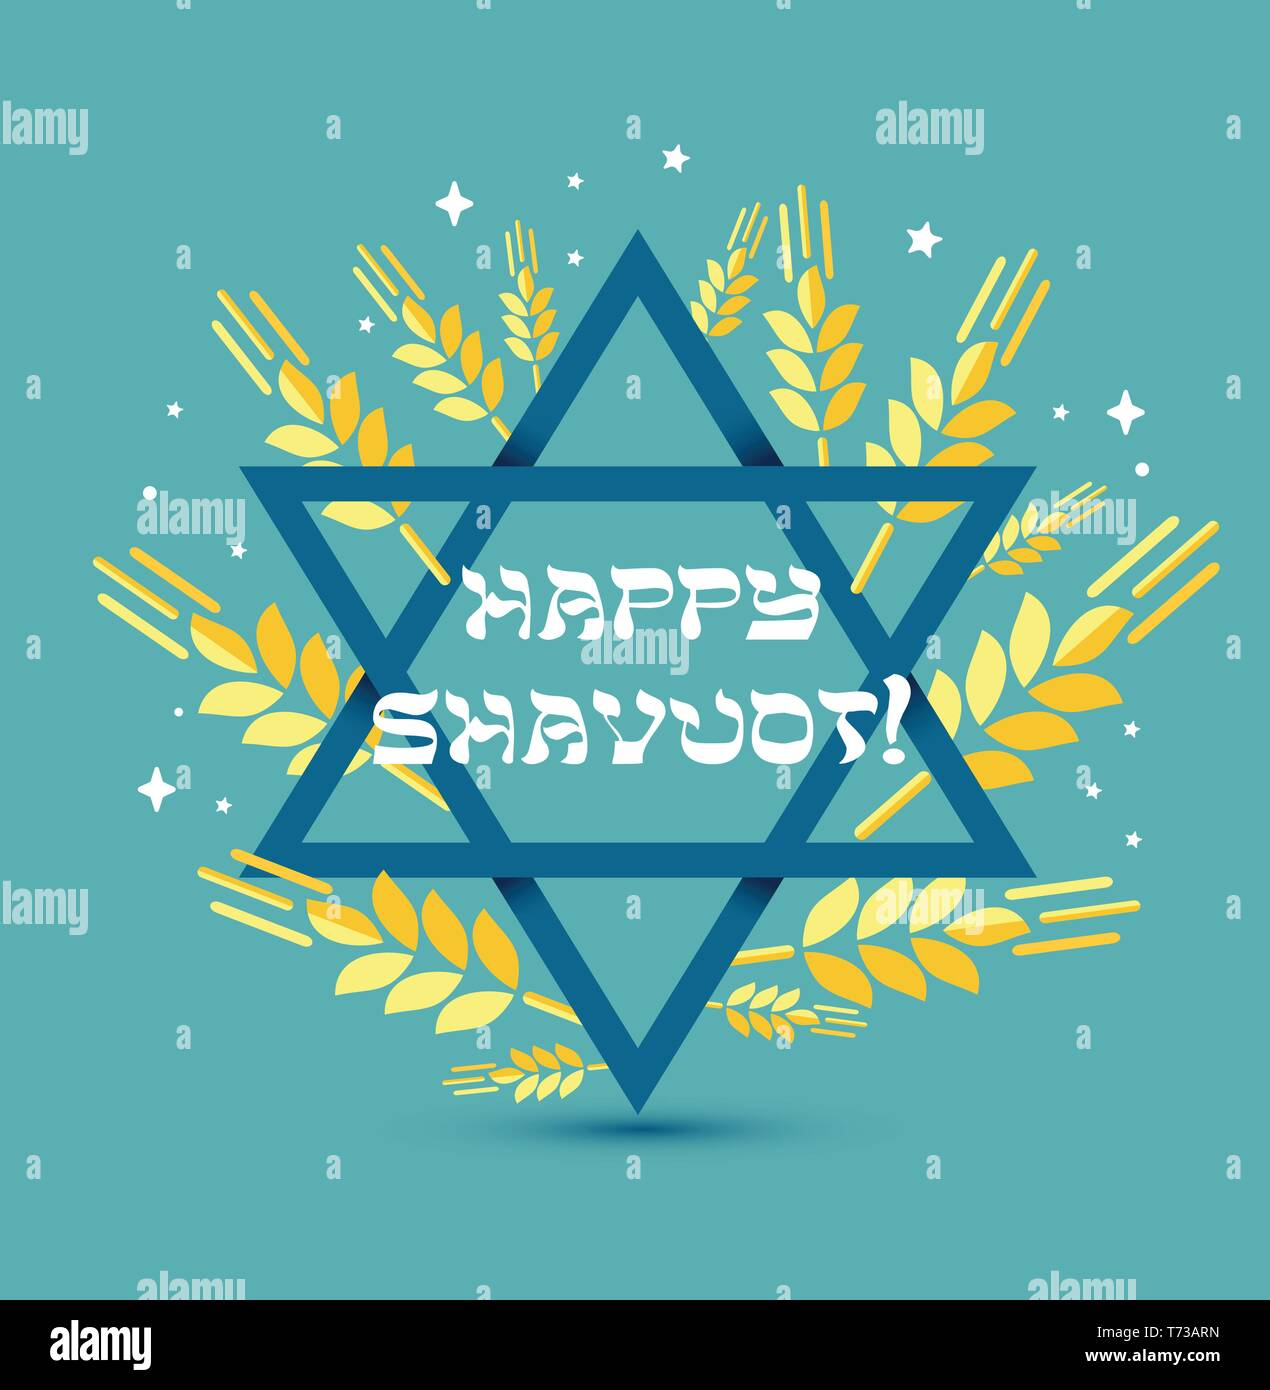 Happy Shavuot. Judaic holiday. Greeting card of Israel. Vector illustration with congratulation in a frame of wheat spikelets with blue star of David. - Stock Vector